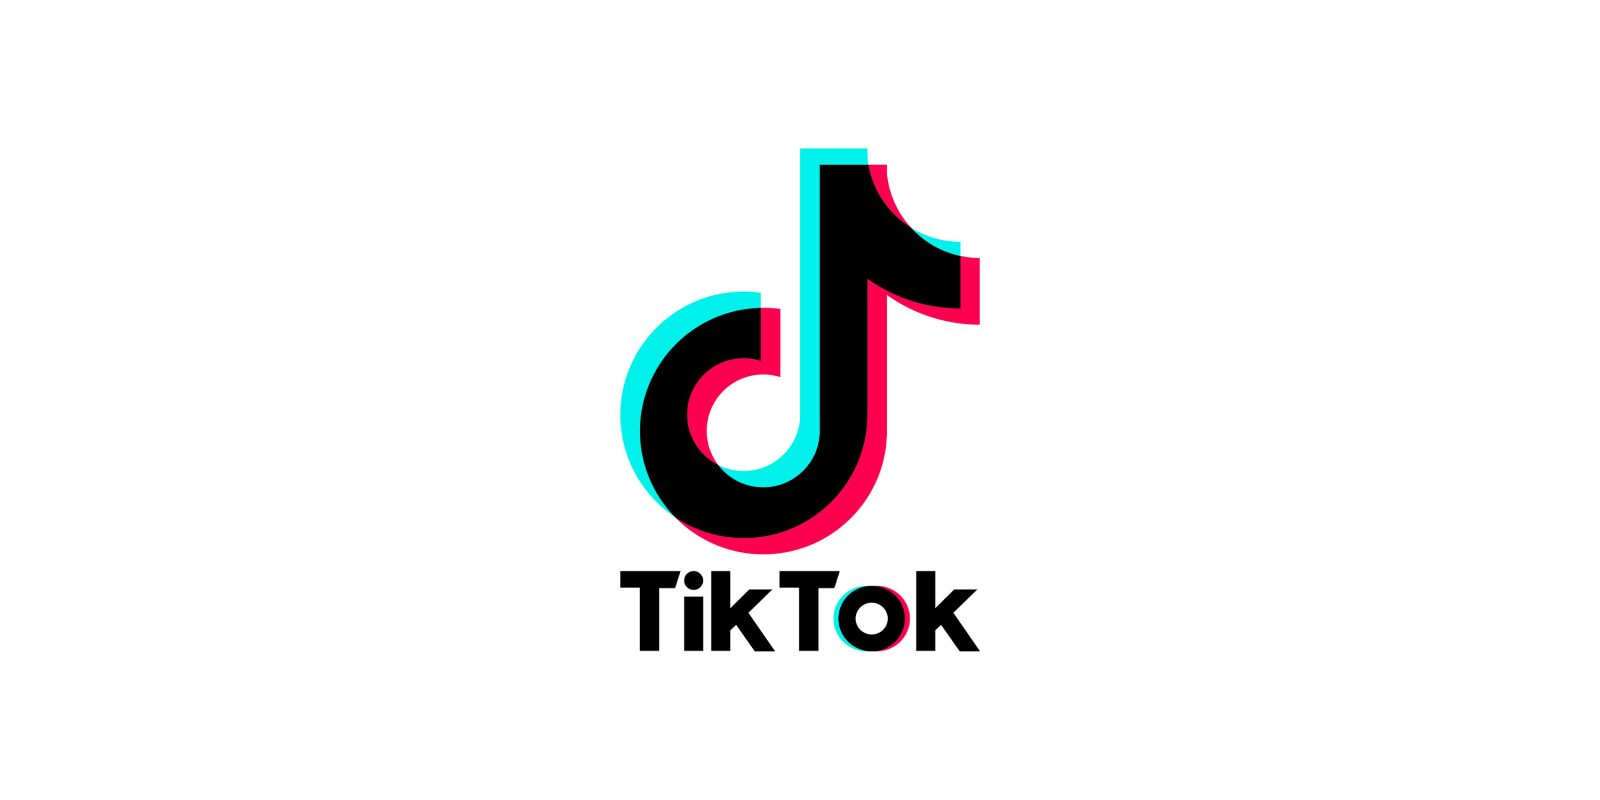 TikTok officially comes into Google's Android TV